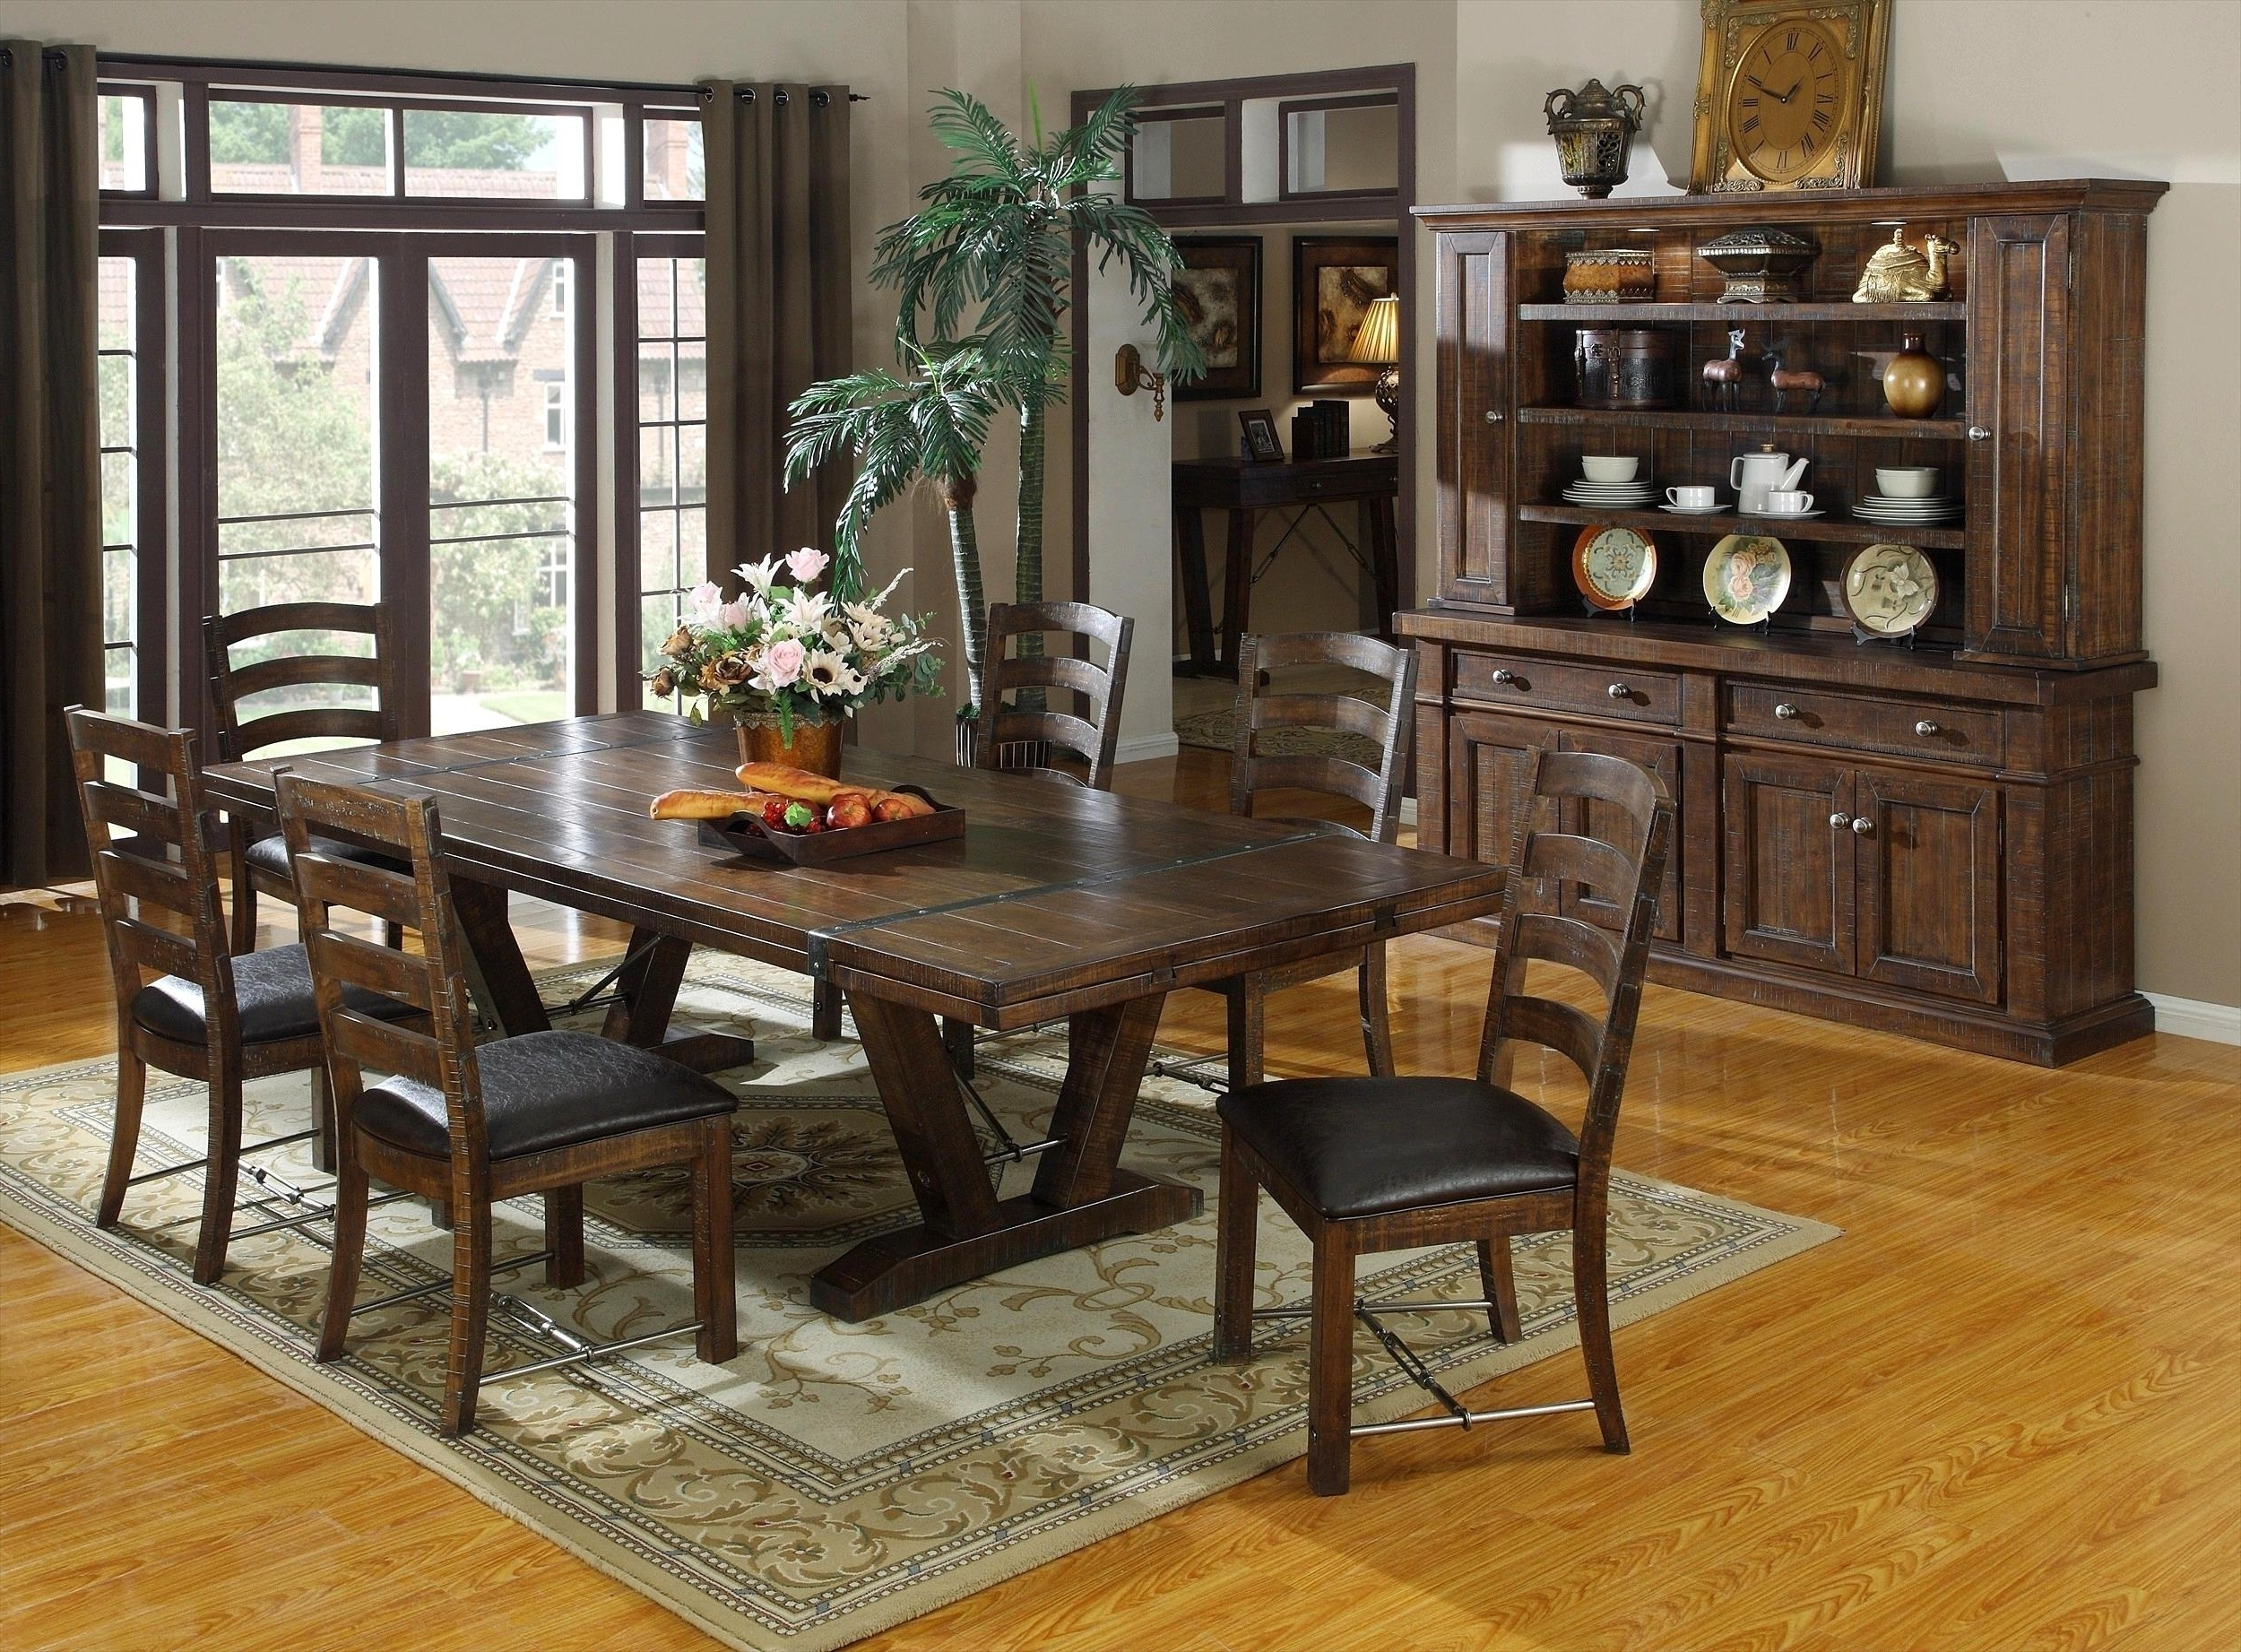 Inspiring Kitchen Dark Brown Wooden Dining Room Dark Brown Polished Intended For Most Current Dark Brown Wood Dining Tables (Gallery 19 of 25)